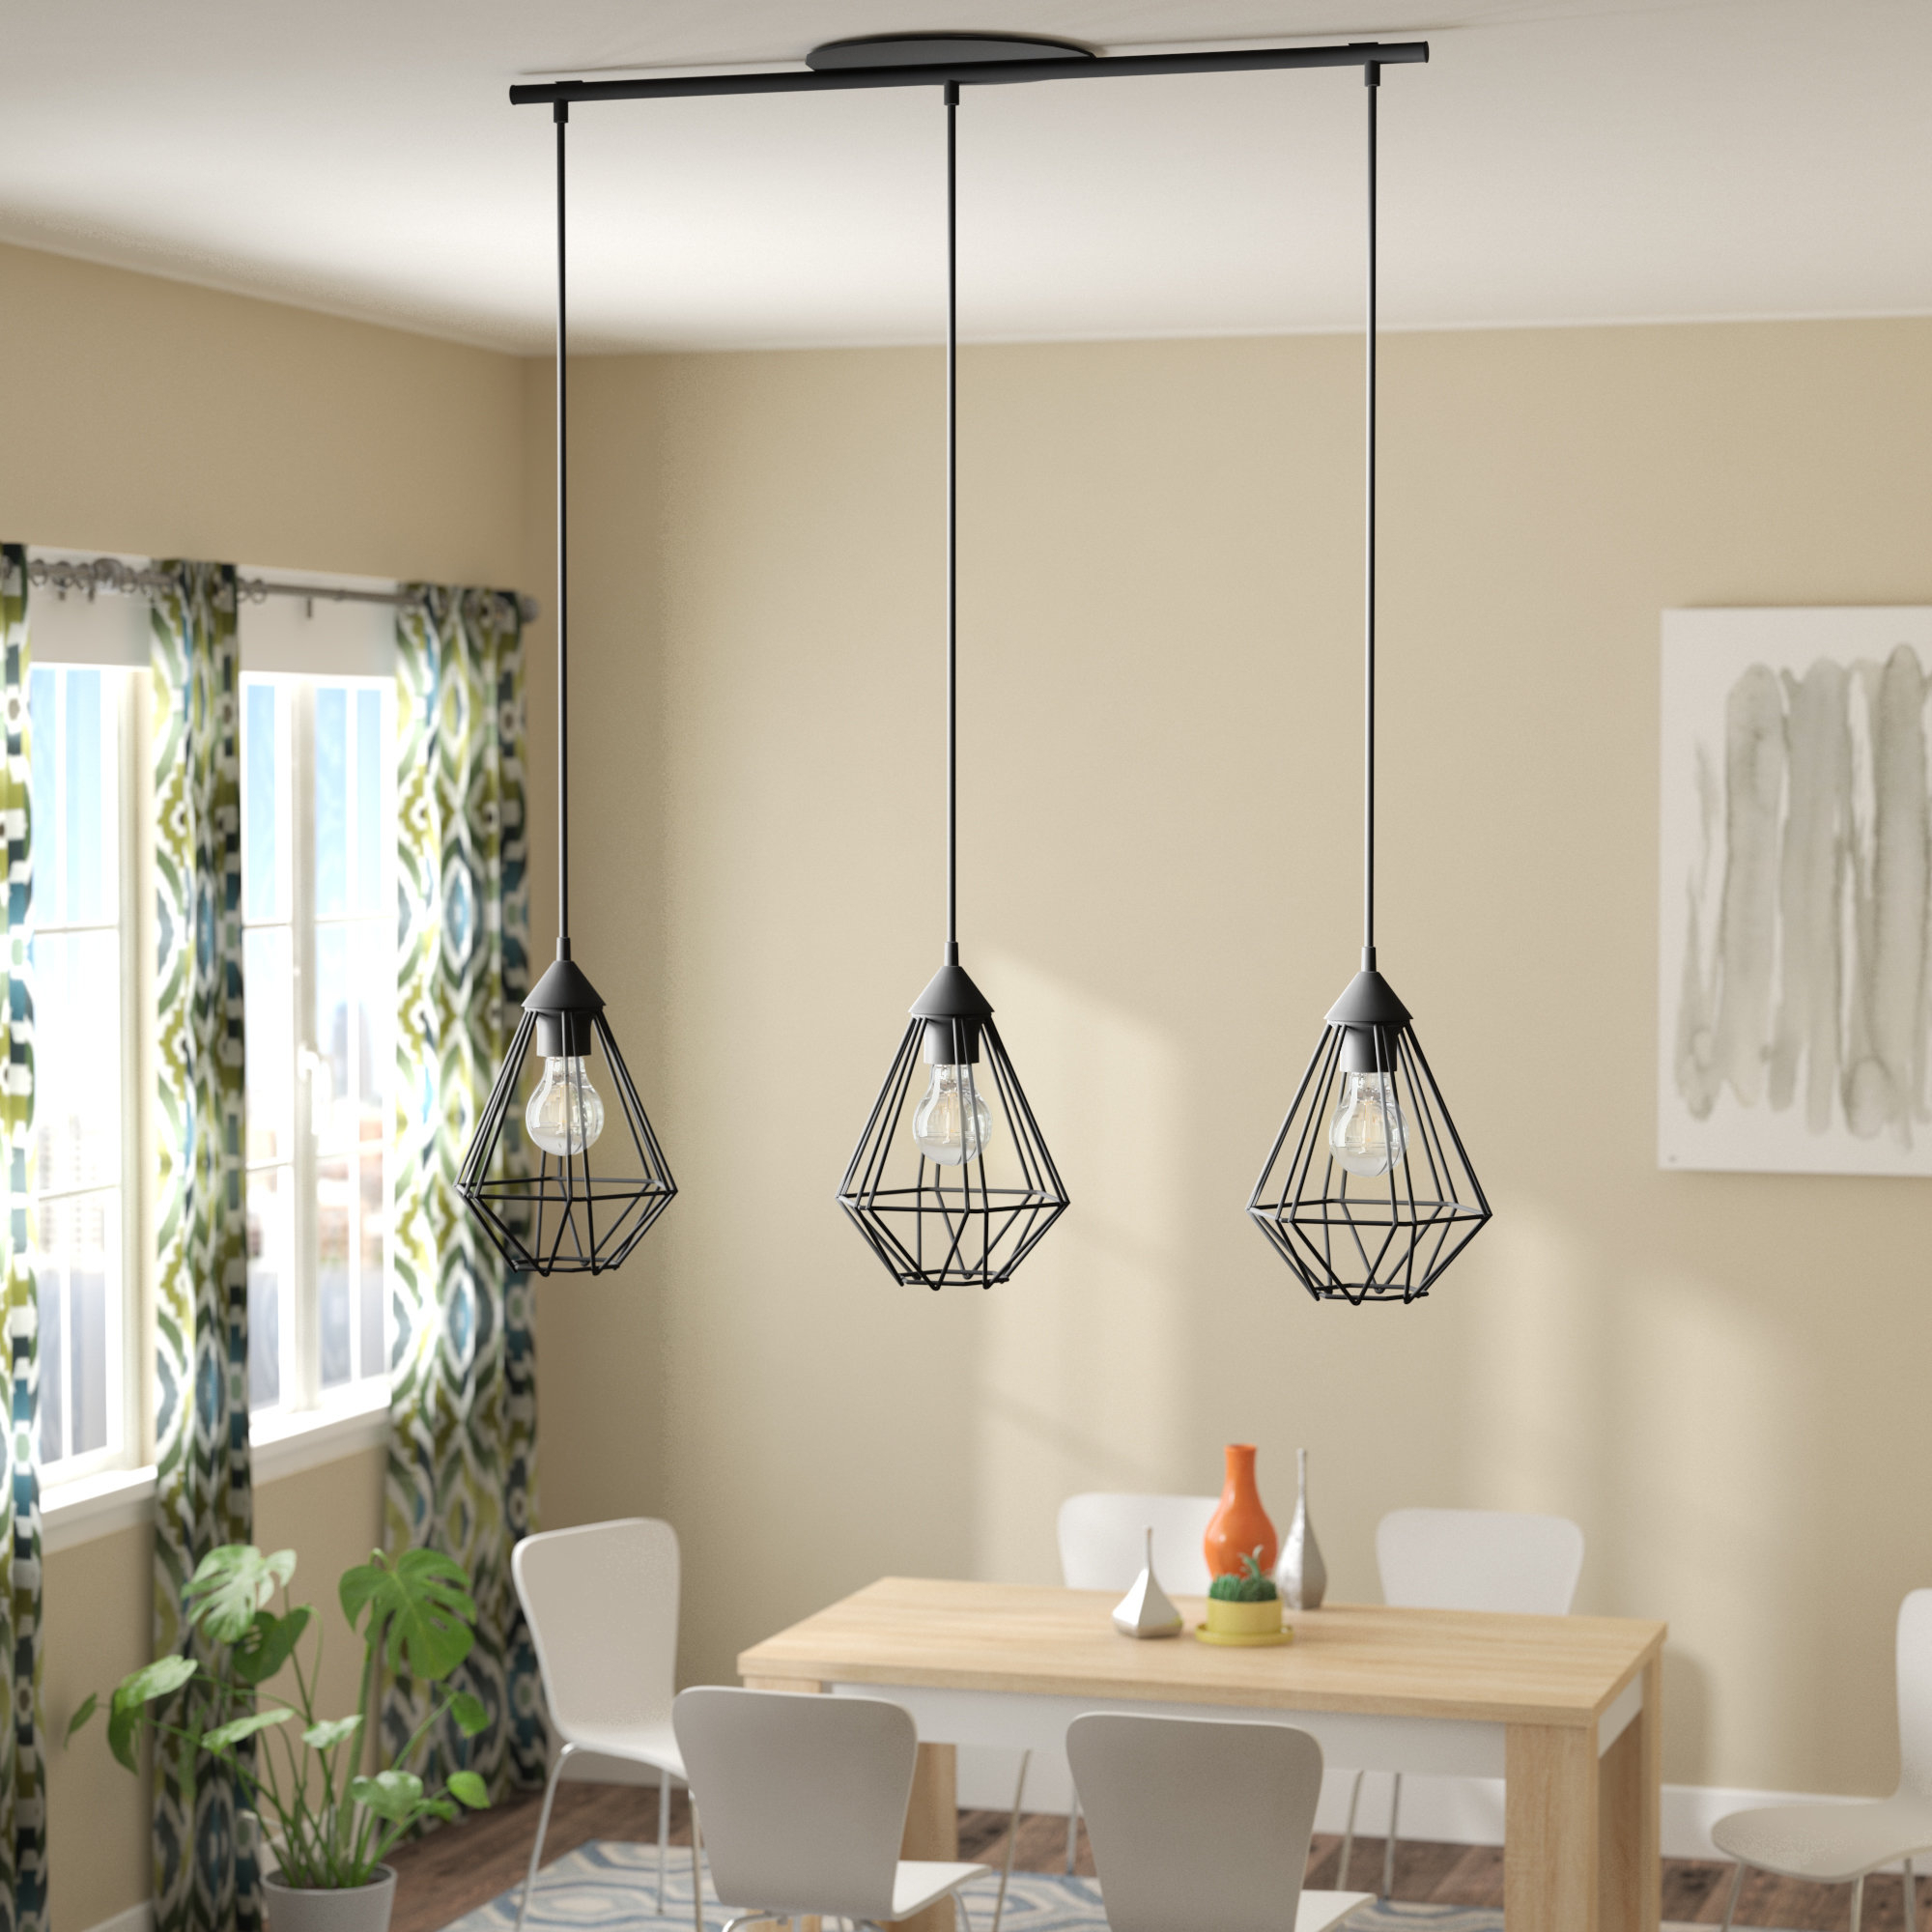 Black Kitchen Island Pendant Lighting You'll Love In 2019 throughout Schutt 4-Light Kitchen Island Pendants (Image 3 of 30)